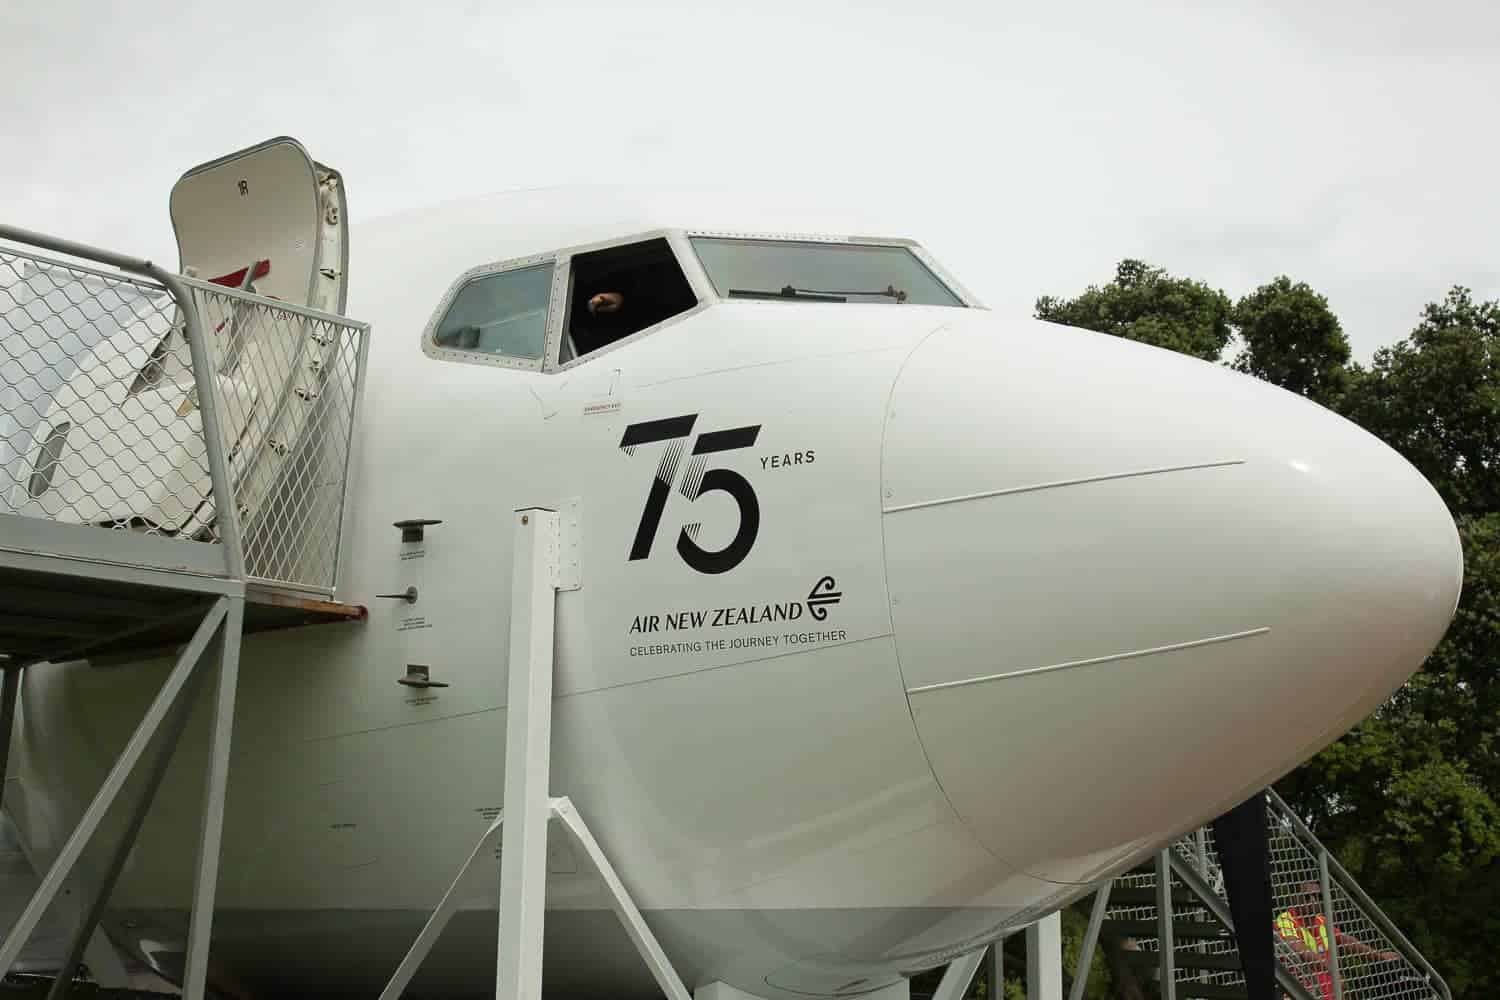 75 years of Air New Zealand